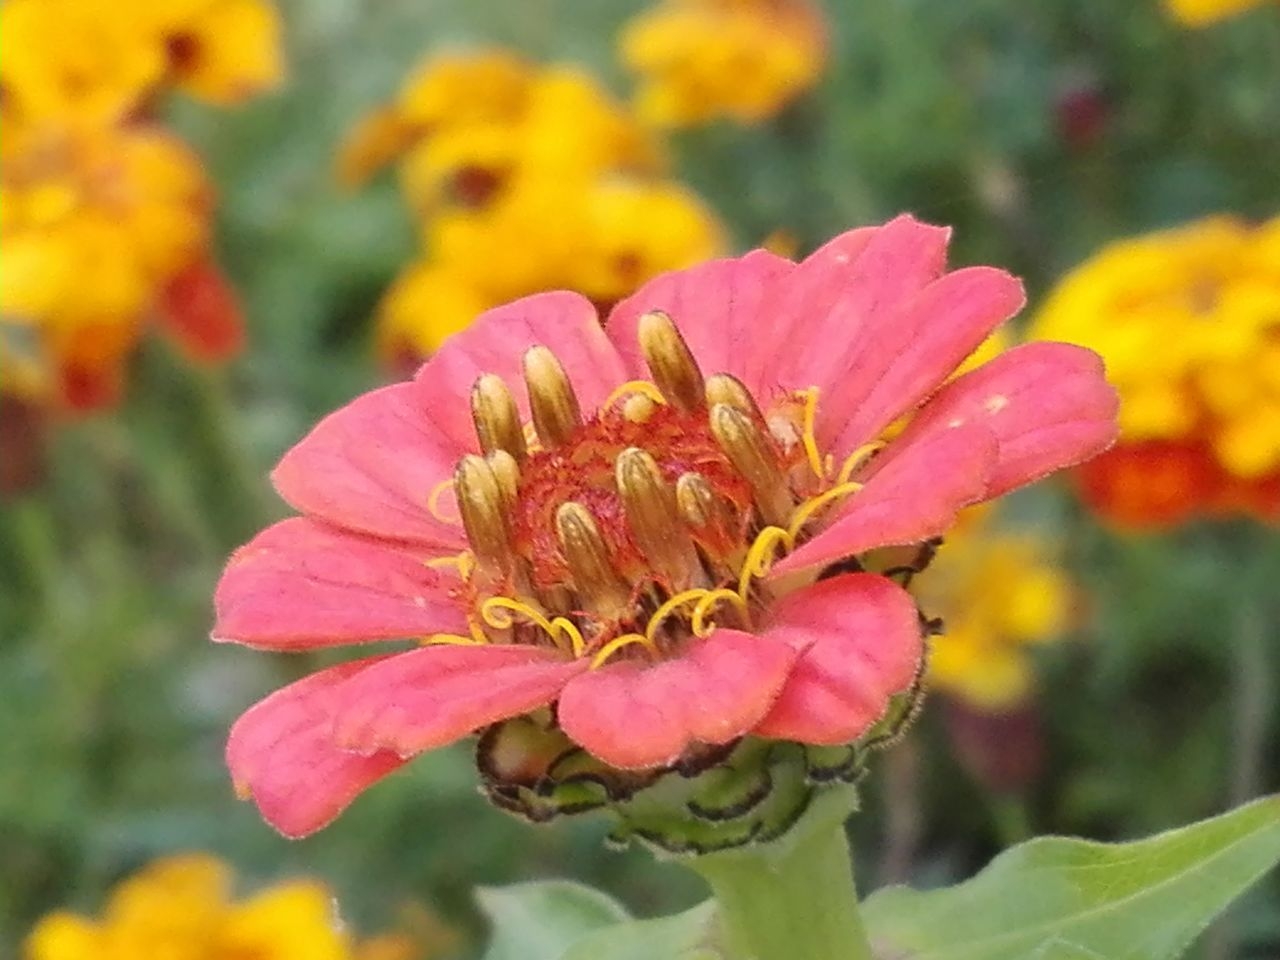 flower, petal, flower head, growth, nature, fragility, plant, beauty in nature, freshness, focus on foreground, blooming, close-up, pollen, day, outdoors, no people, pink color, zinnia